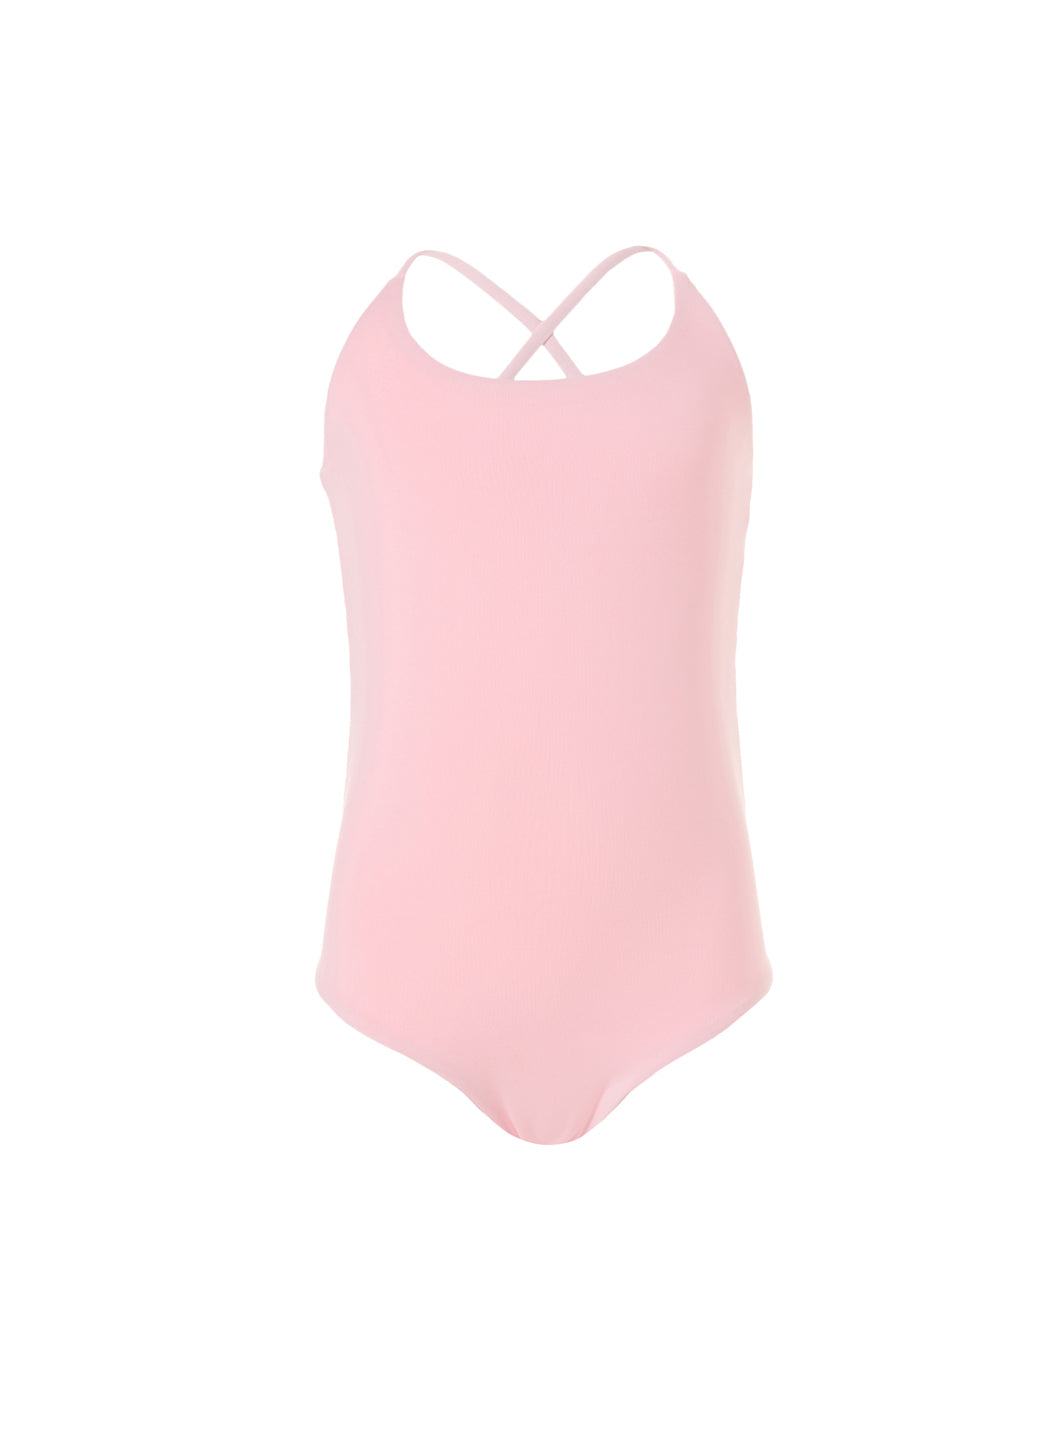 Baby Vicky Pale Pink /Neon  Cross-Back Onepiece Swimsuit